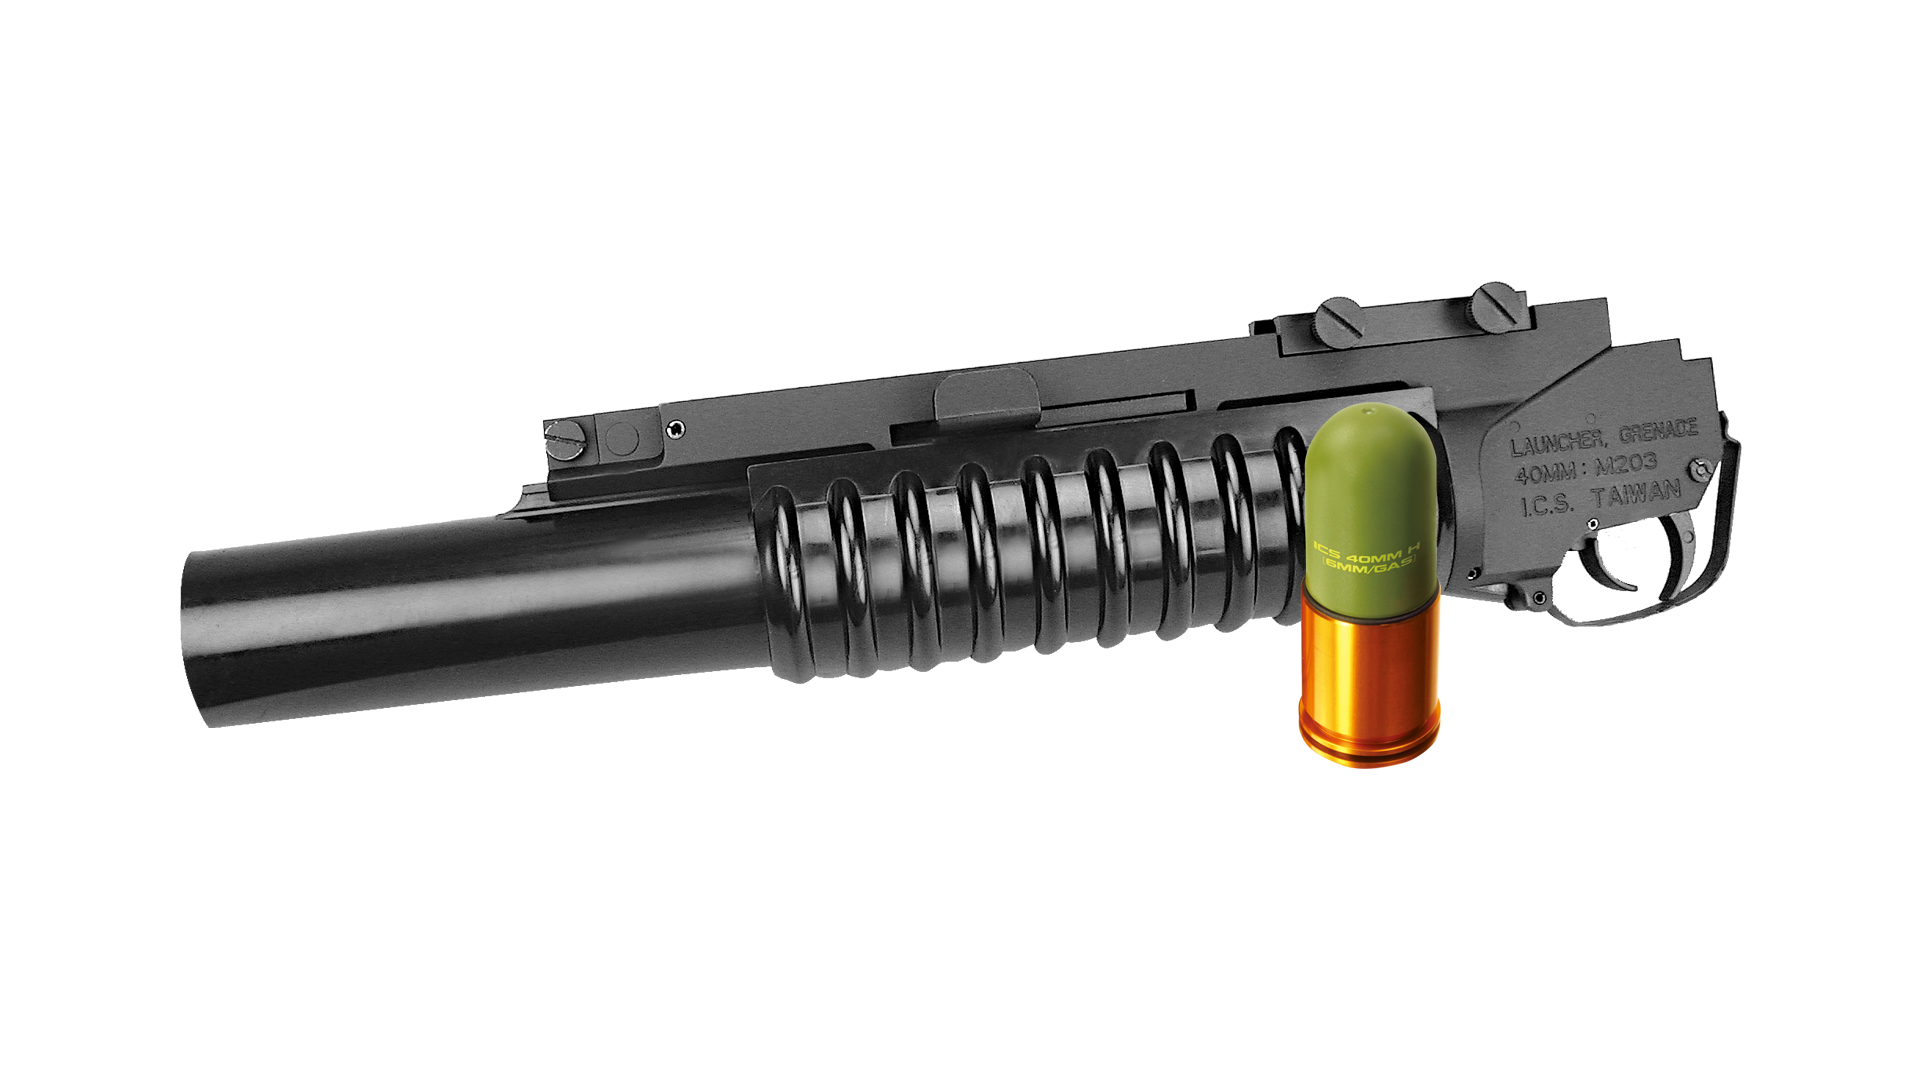 【Discontinued】【MA-159】M203 GRENADE LAUNCHER (Incl. One 40mm Lightweight Grenade)